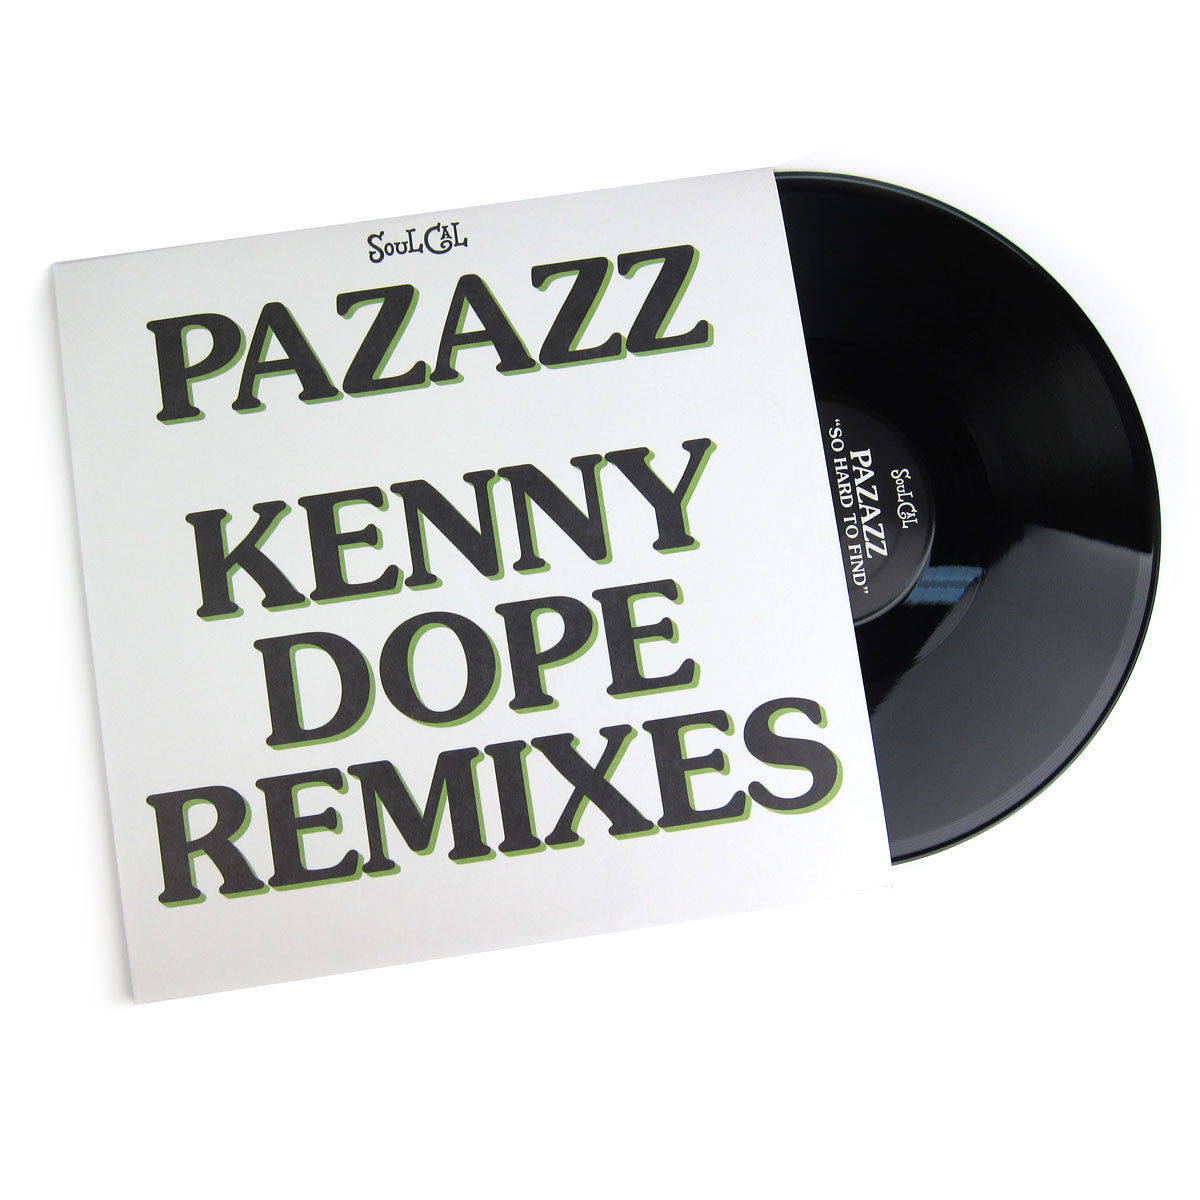 Pazazz: So Hard To Find (Kenny Dope Mix) Vinyl 12""